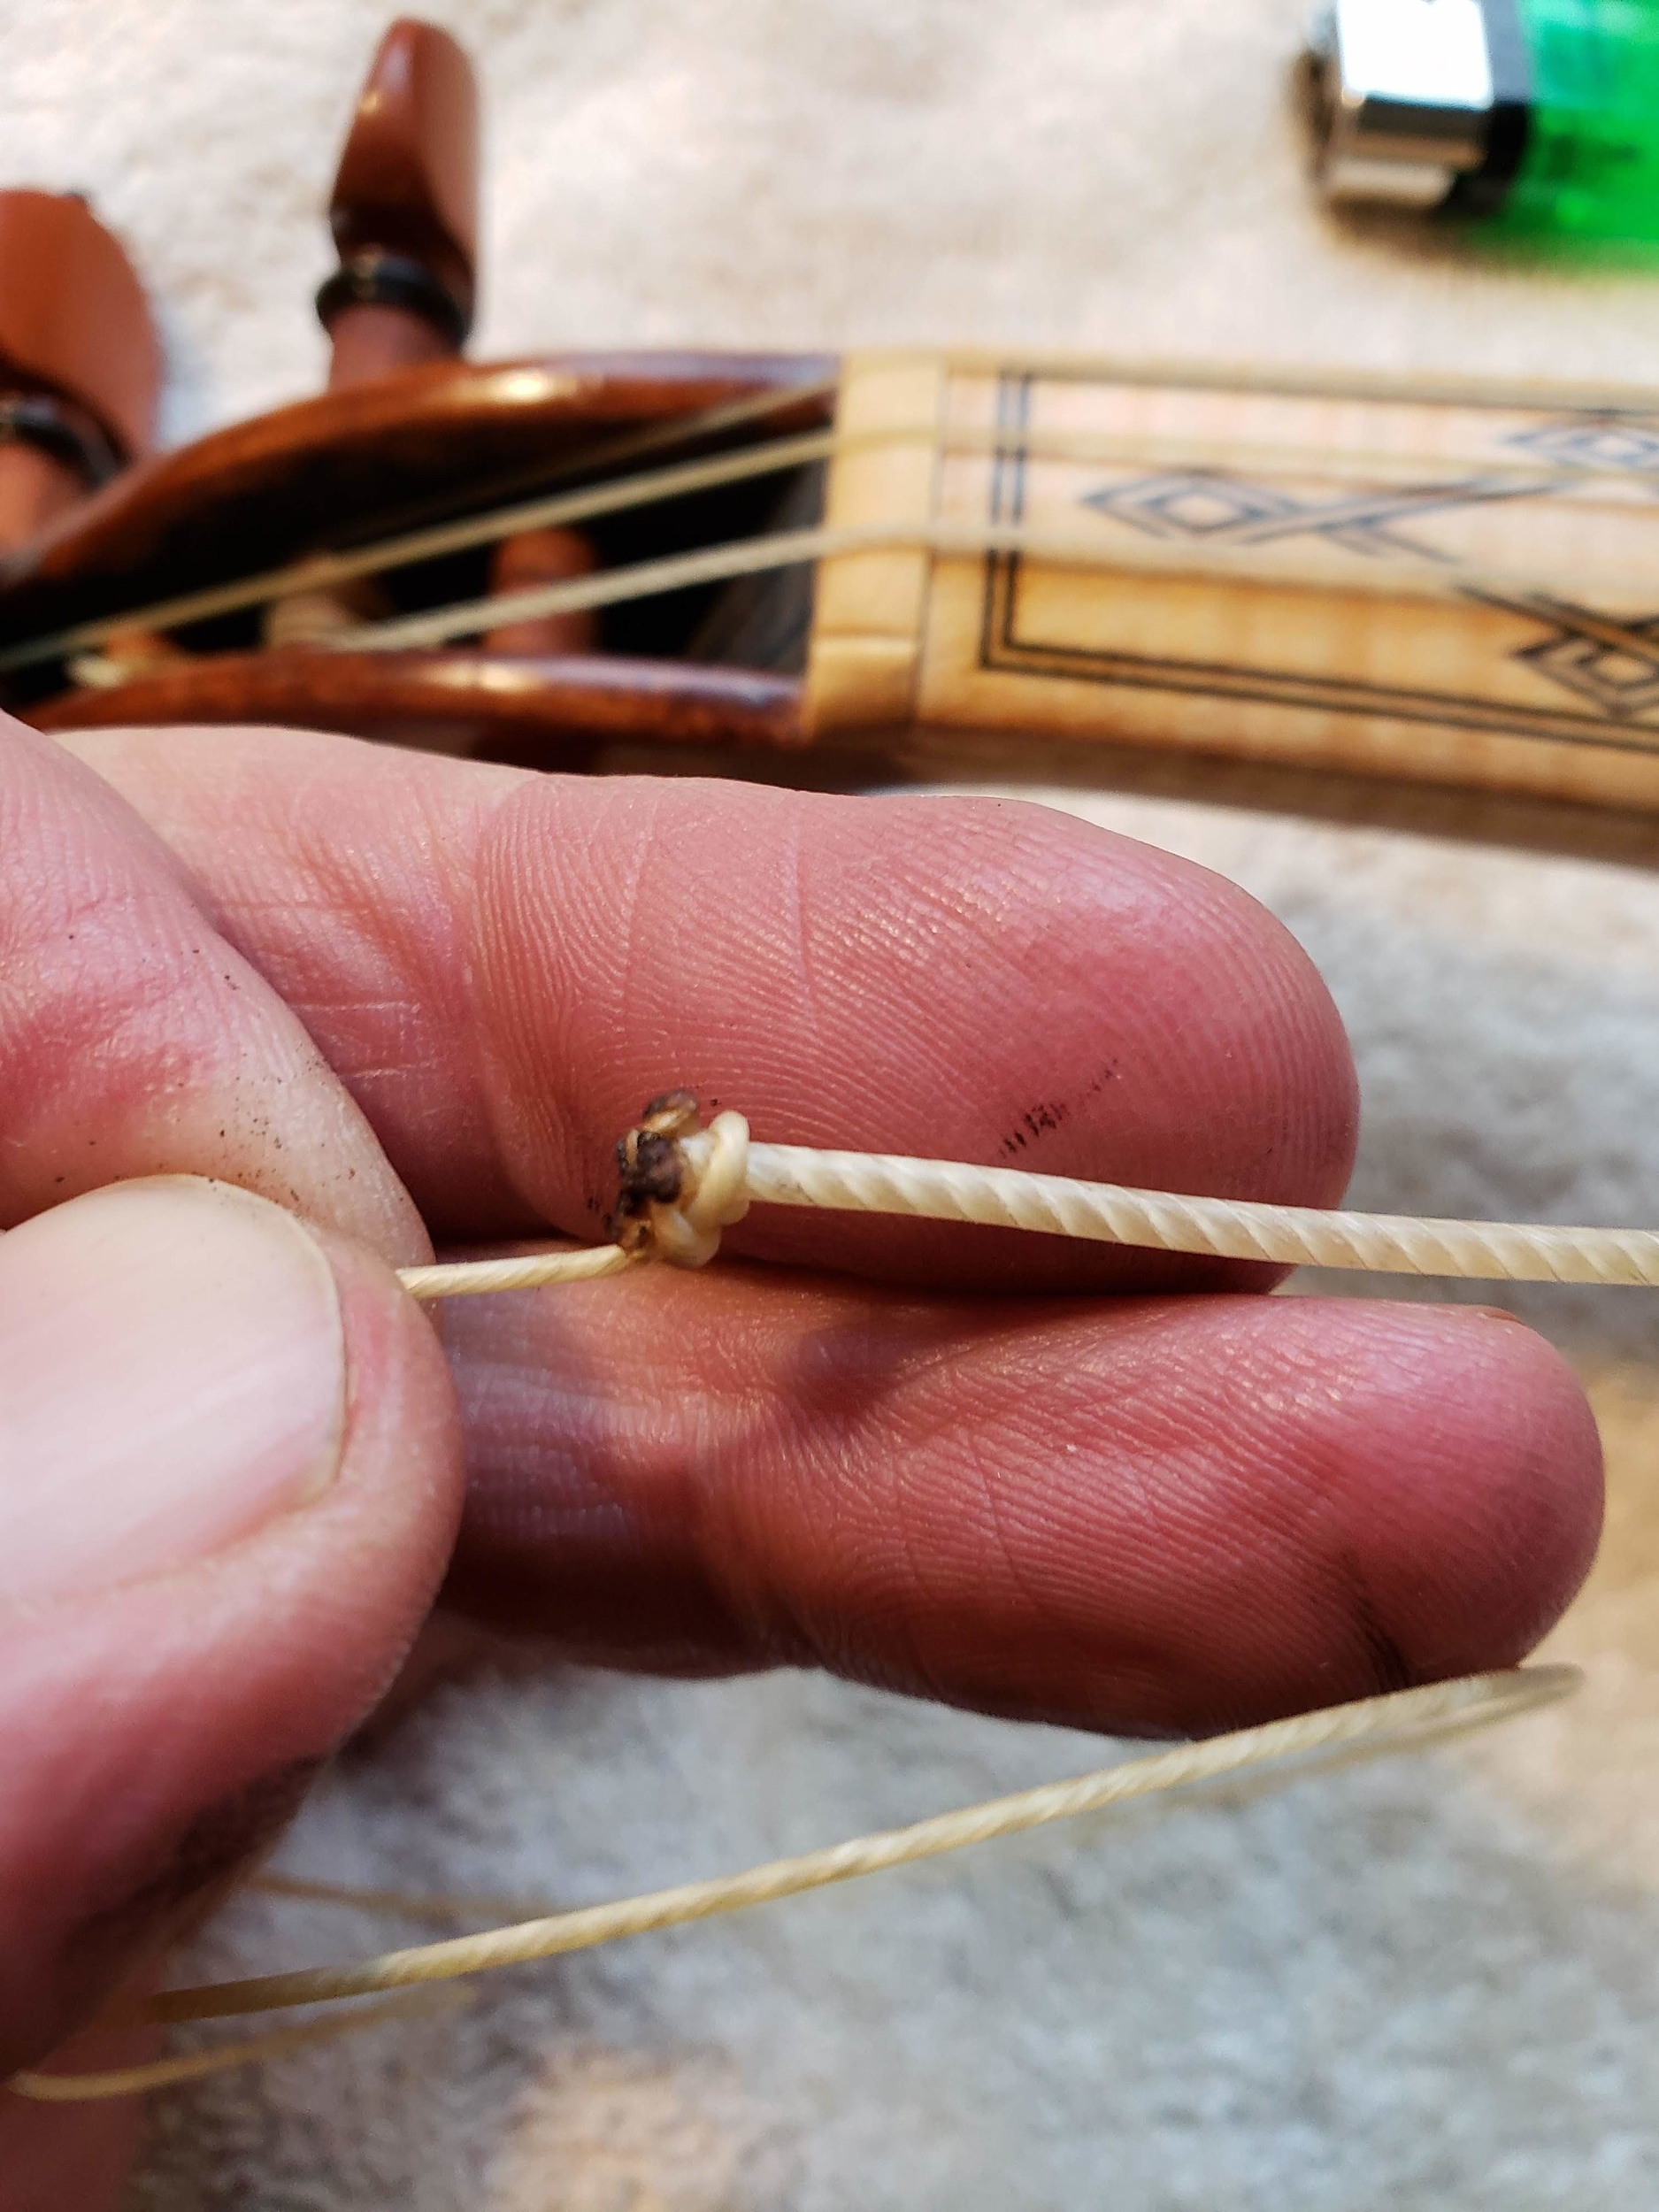 Step 12 - Pull the slip-knot tight and snug against the mushroomed end of the playing srtring.